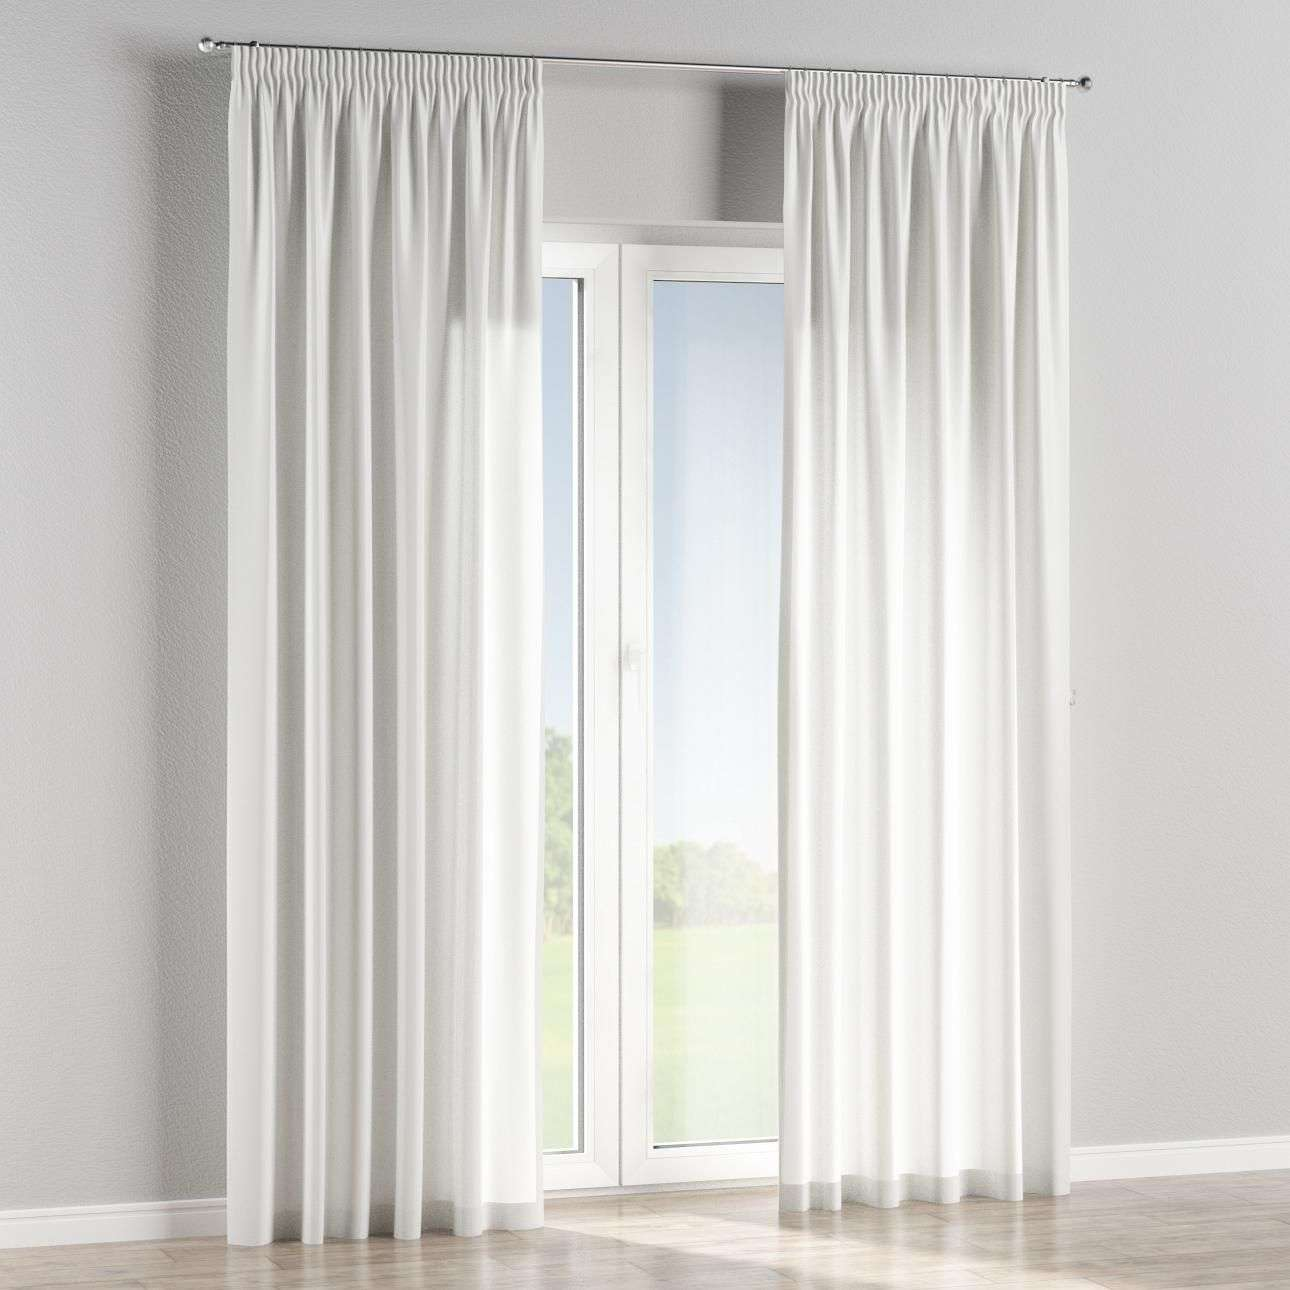 Pencil pleat lined curtains in collection Venice, fabric: 140-53